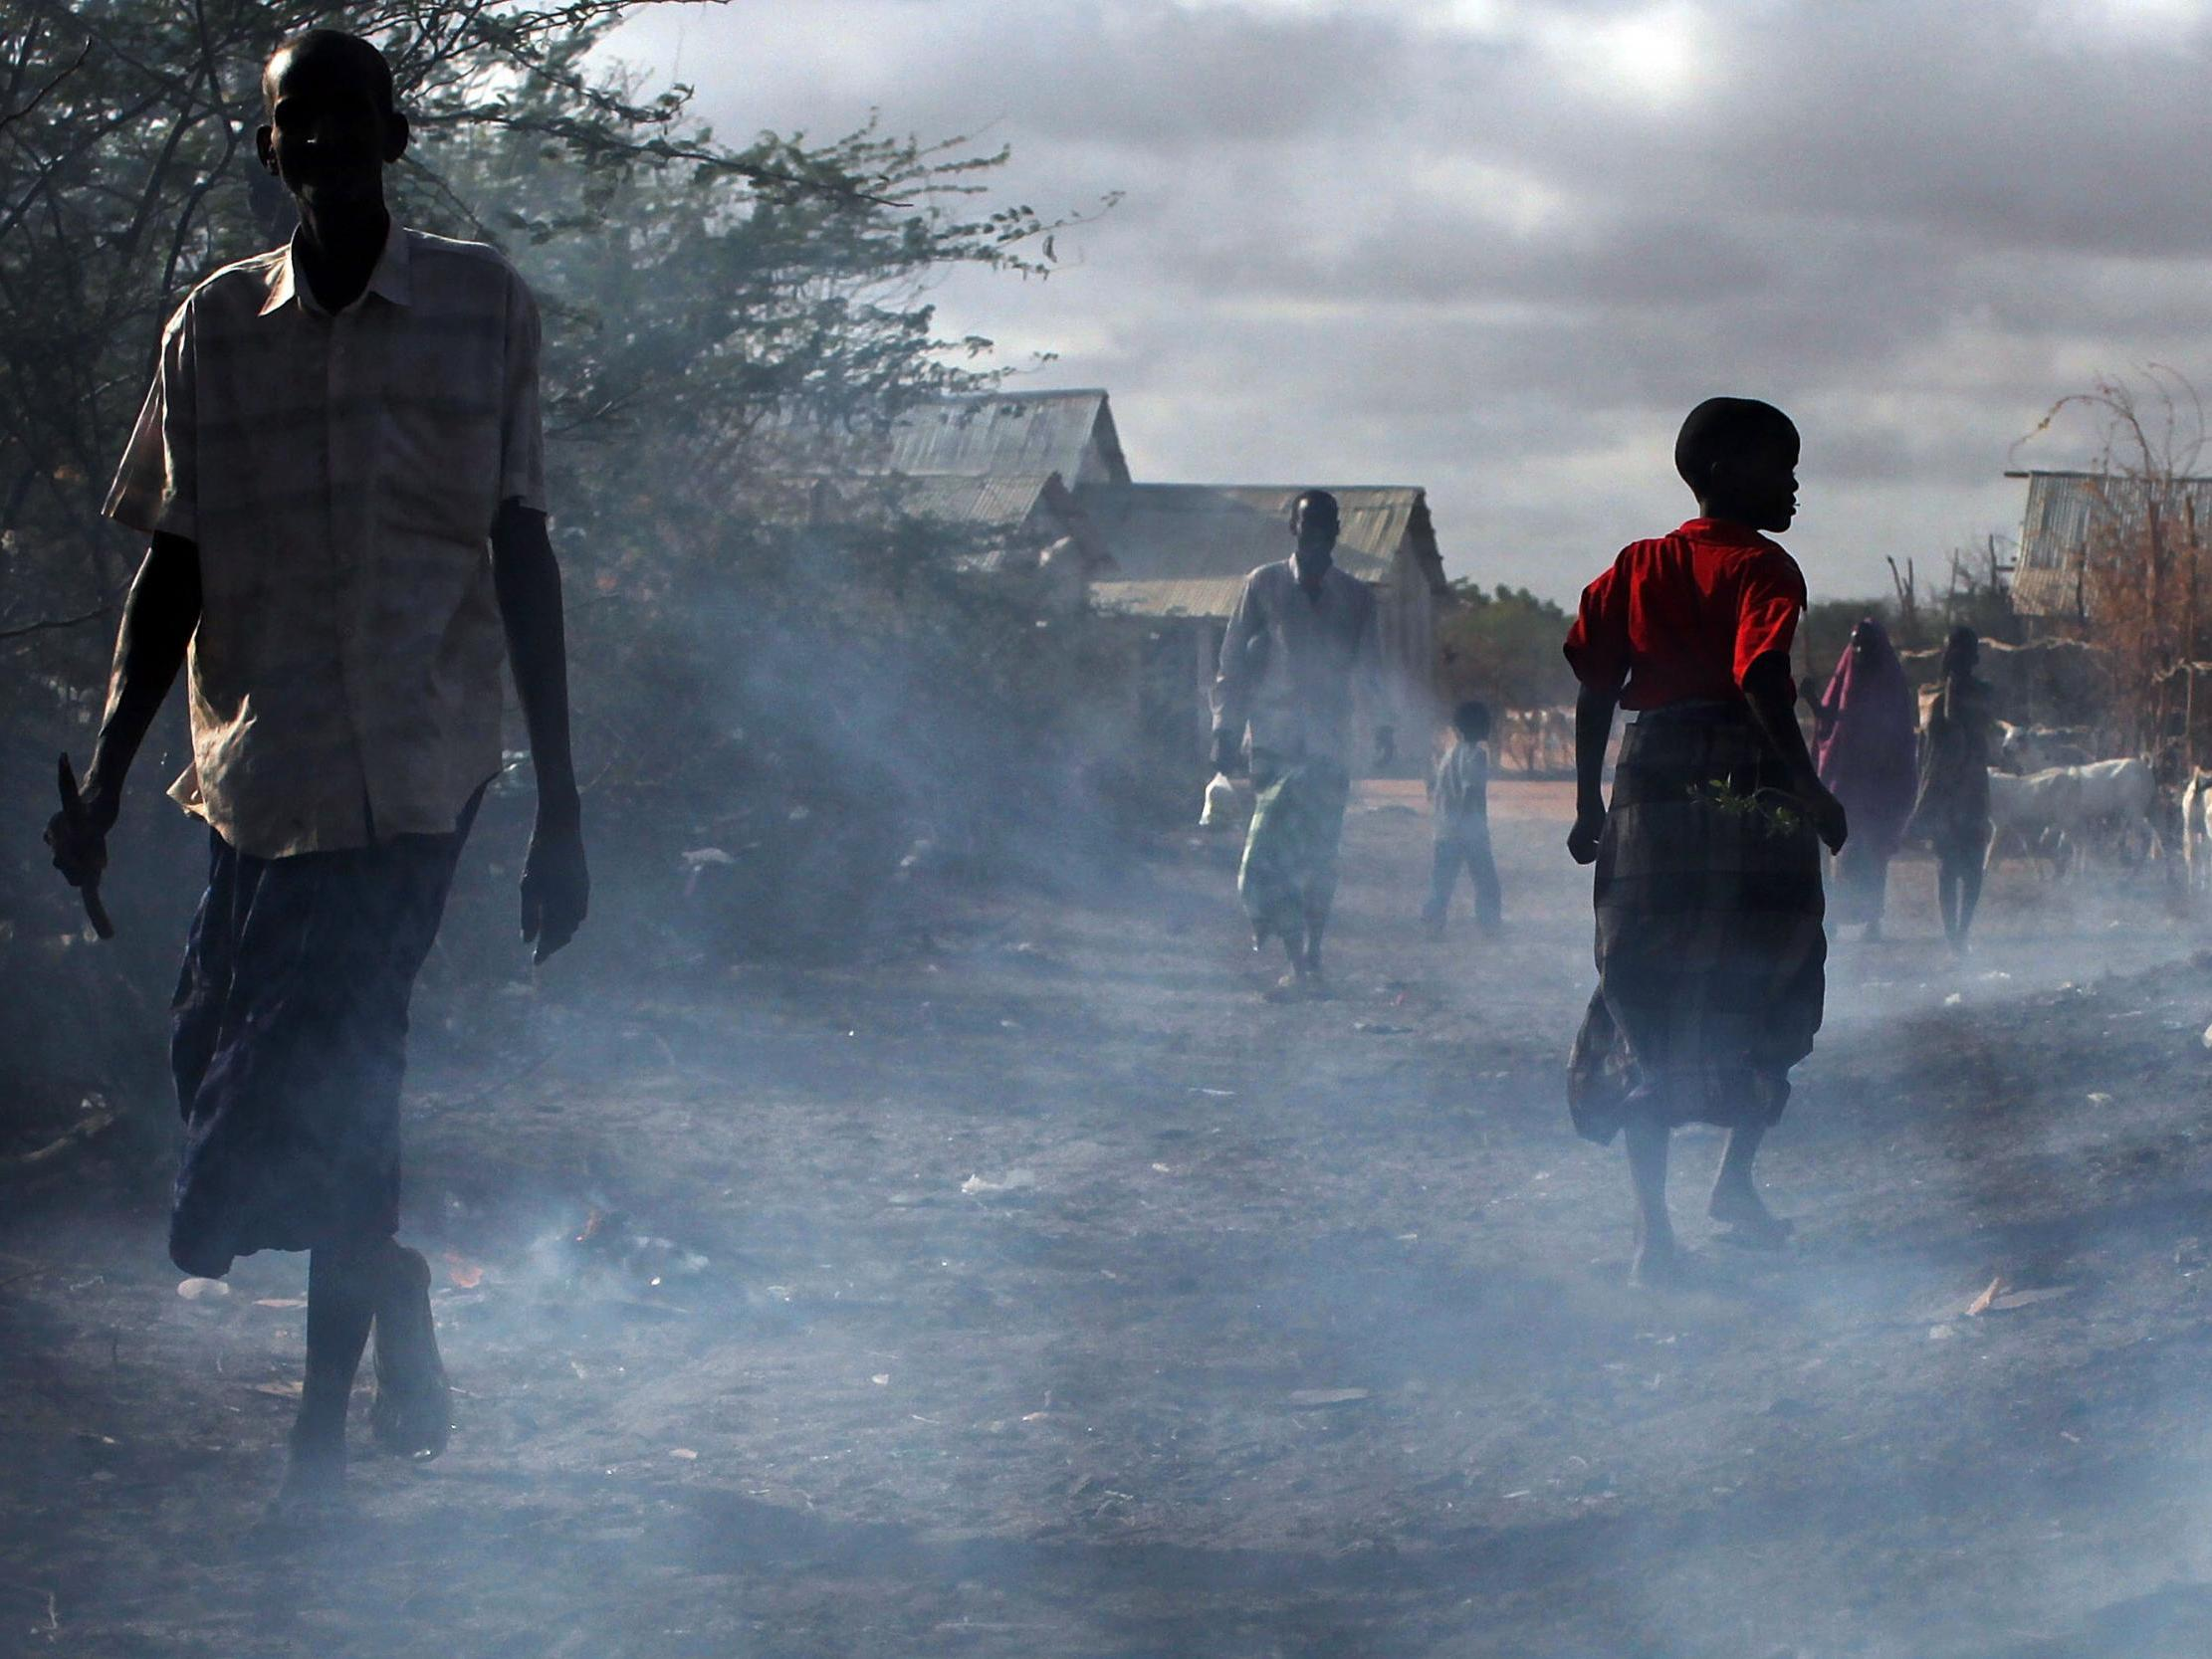 Somalia - latest news, breaking stories and comment - The Independent